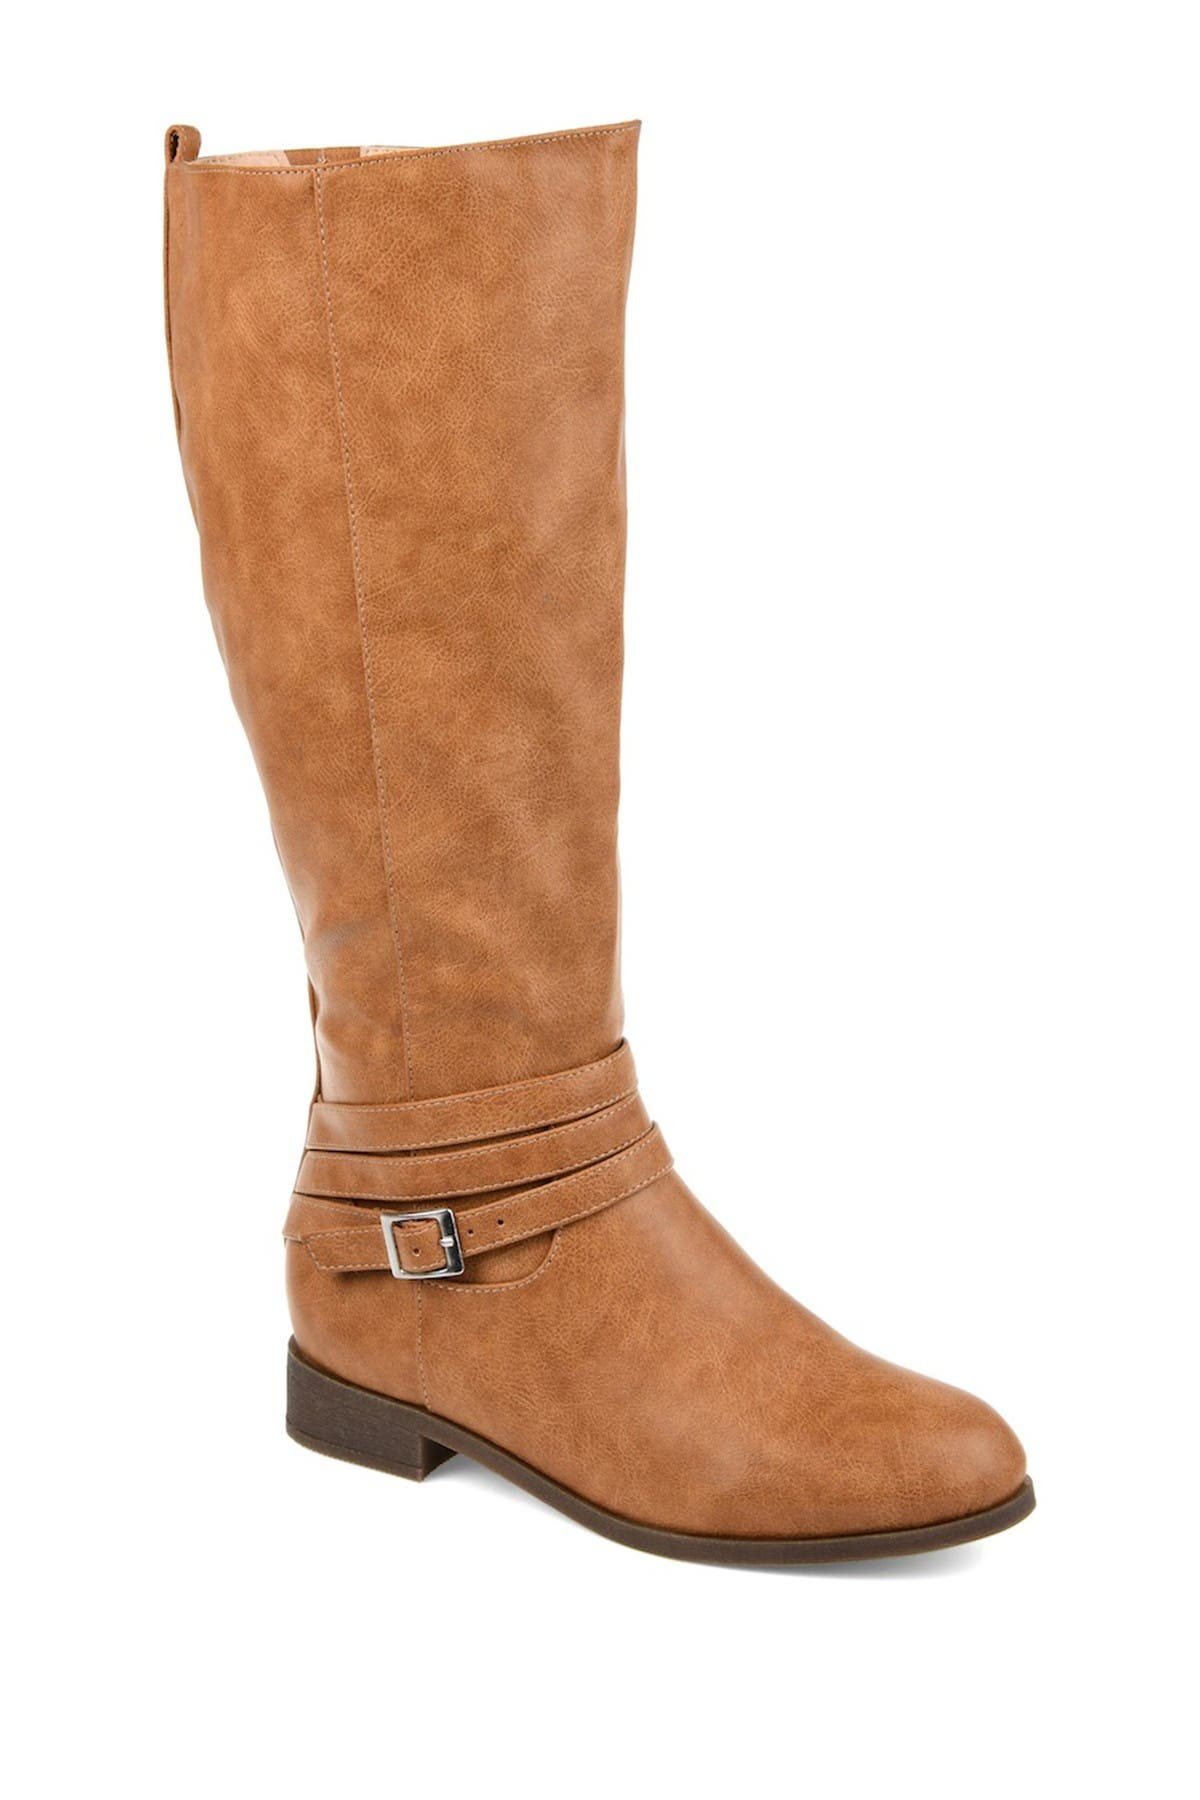 Image of JOURNEE Collection Ivie Tall Boot - Wide Calf